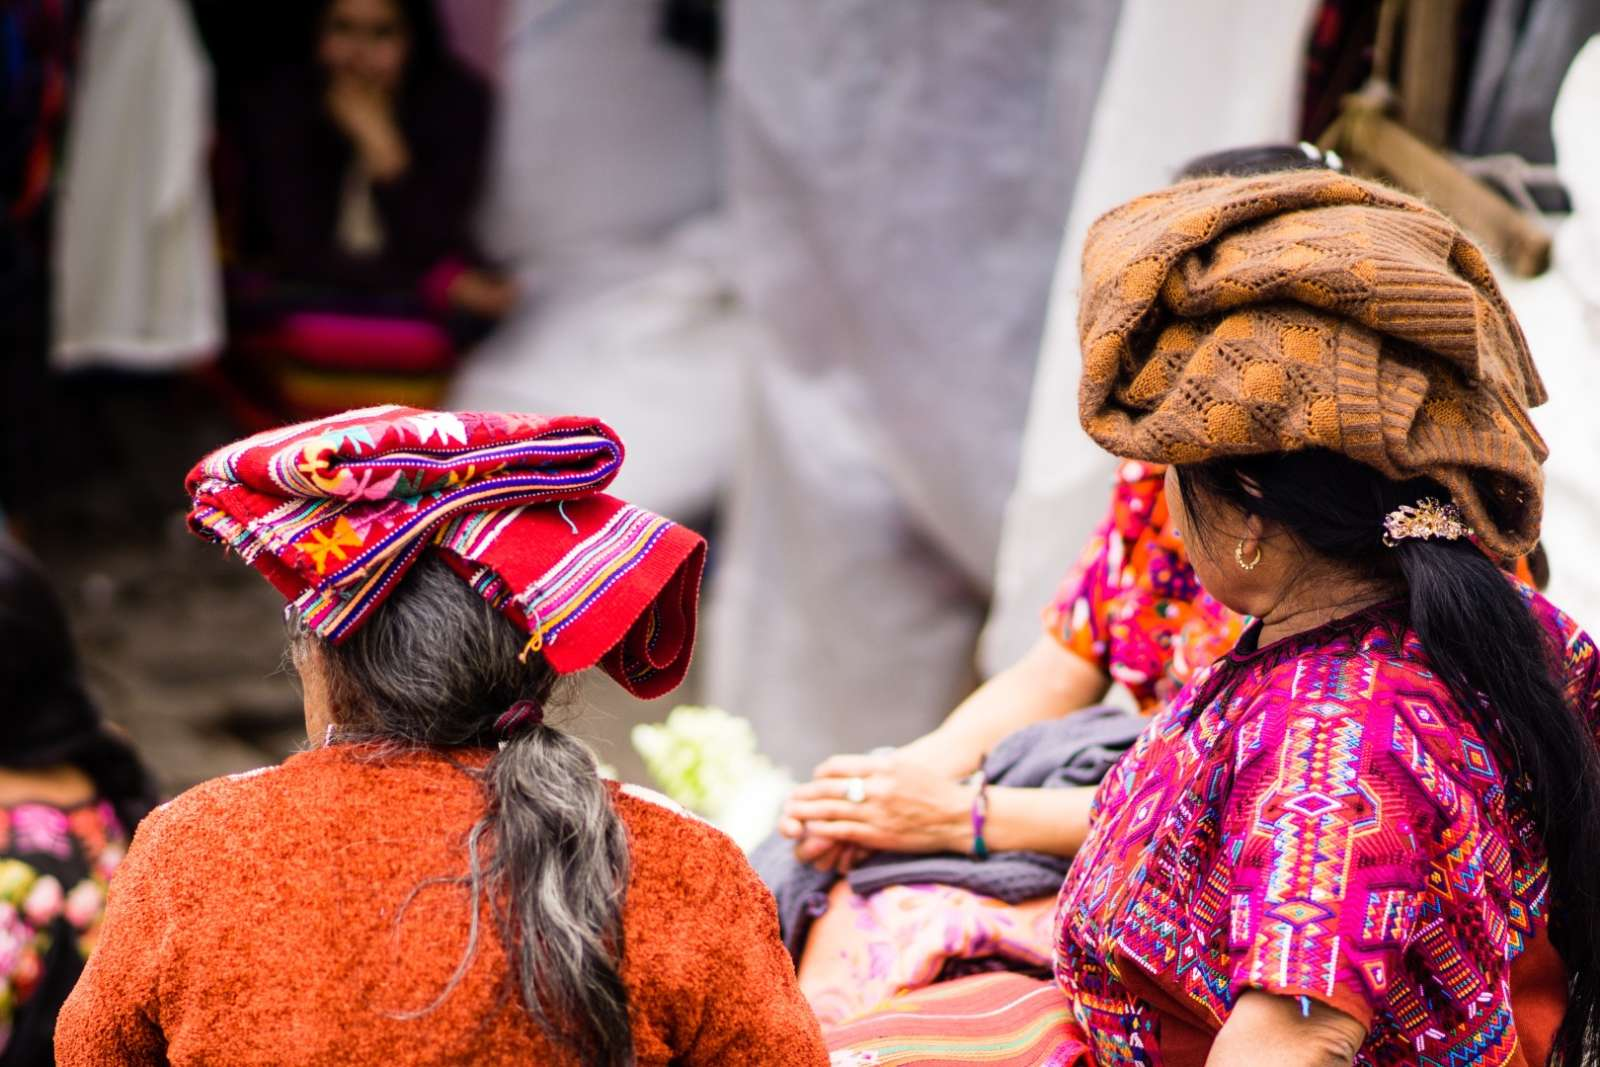 Women with blankets on heads at Chichicastenango, Guatemala